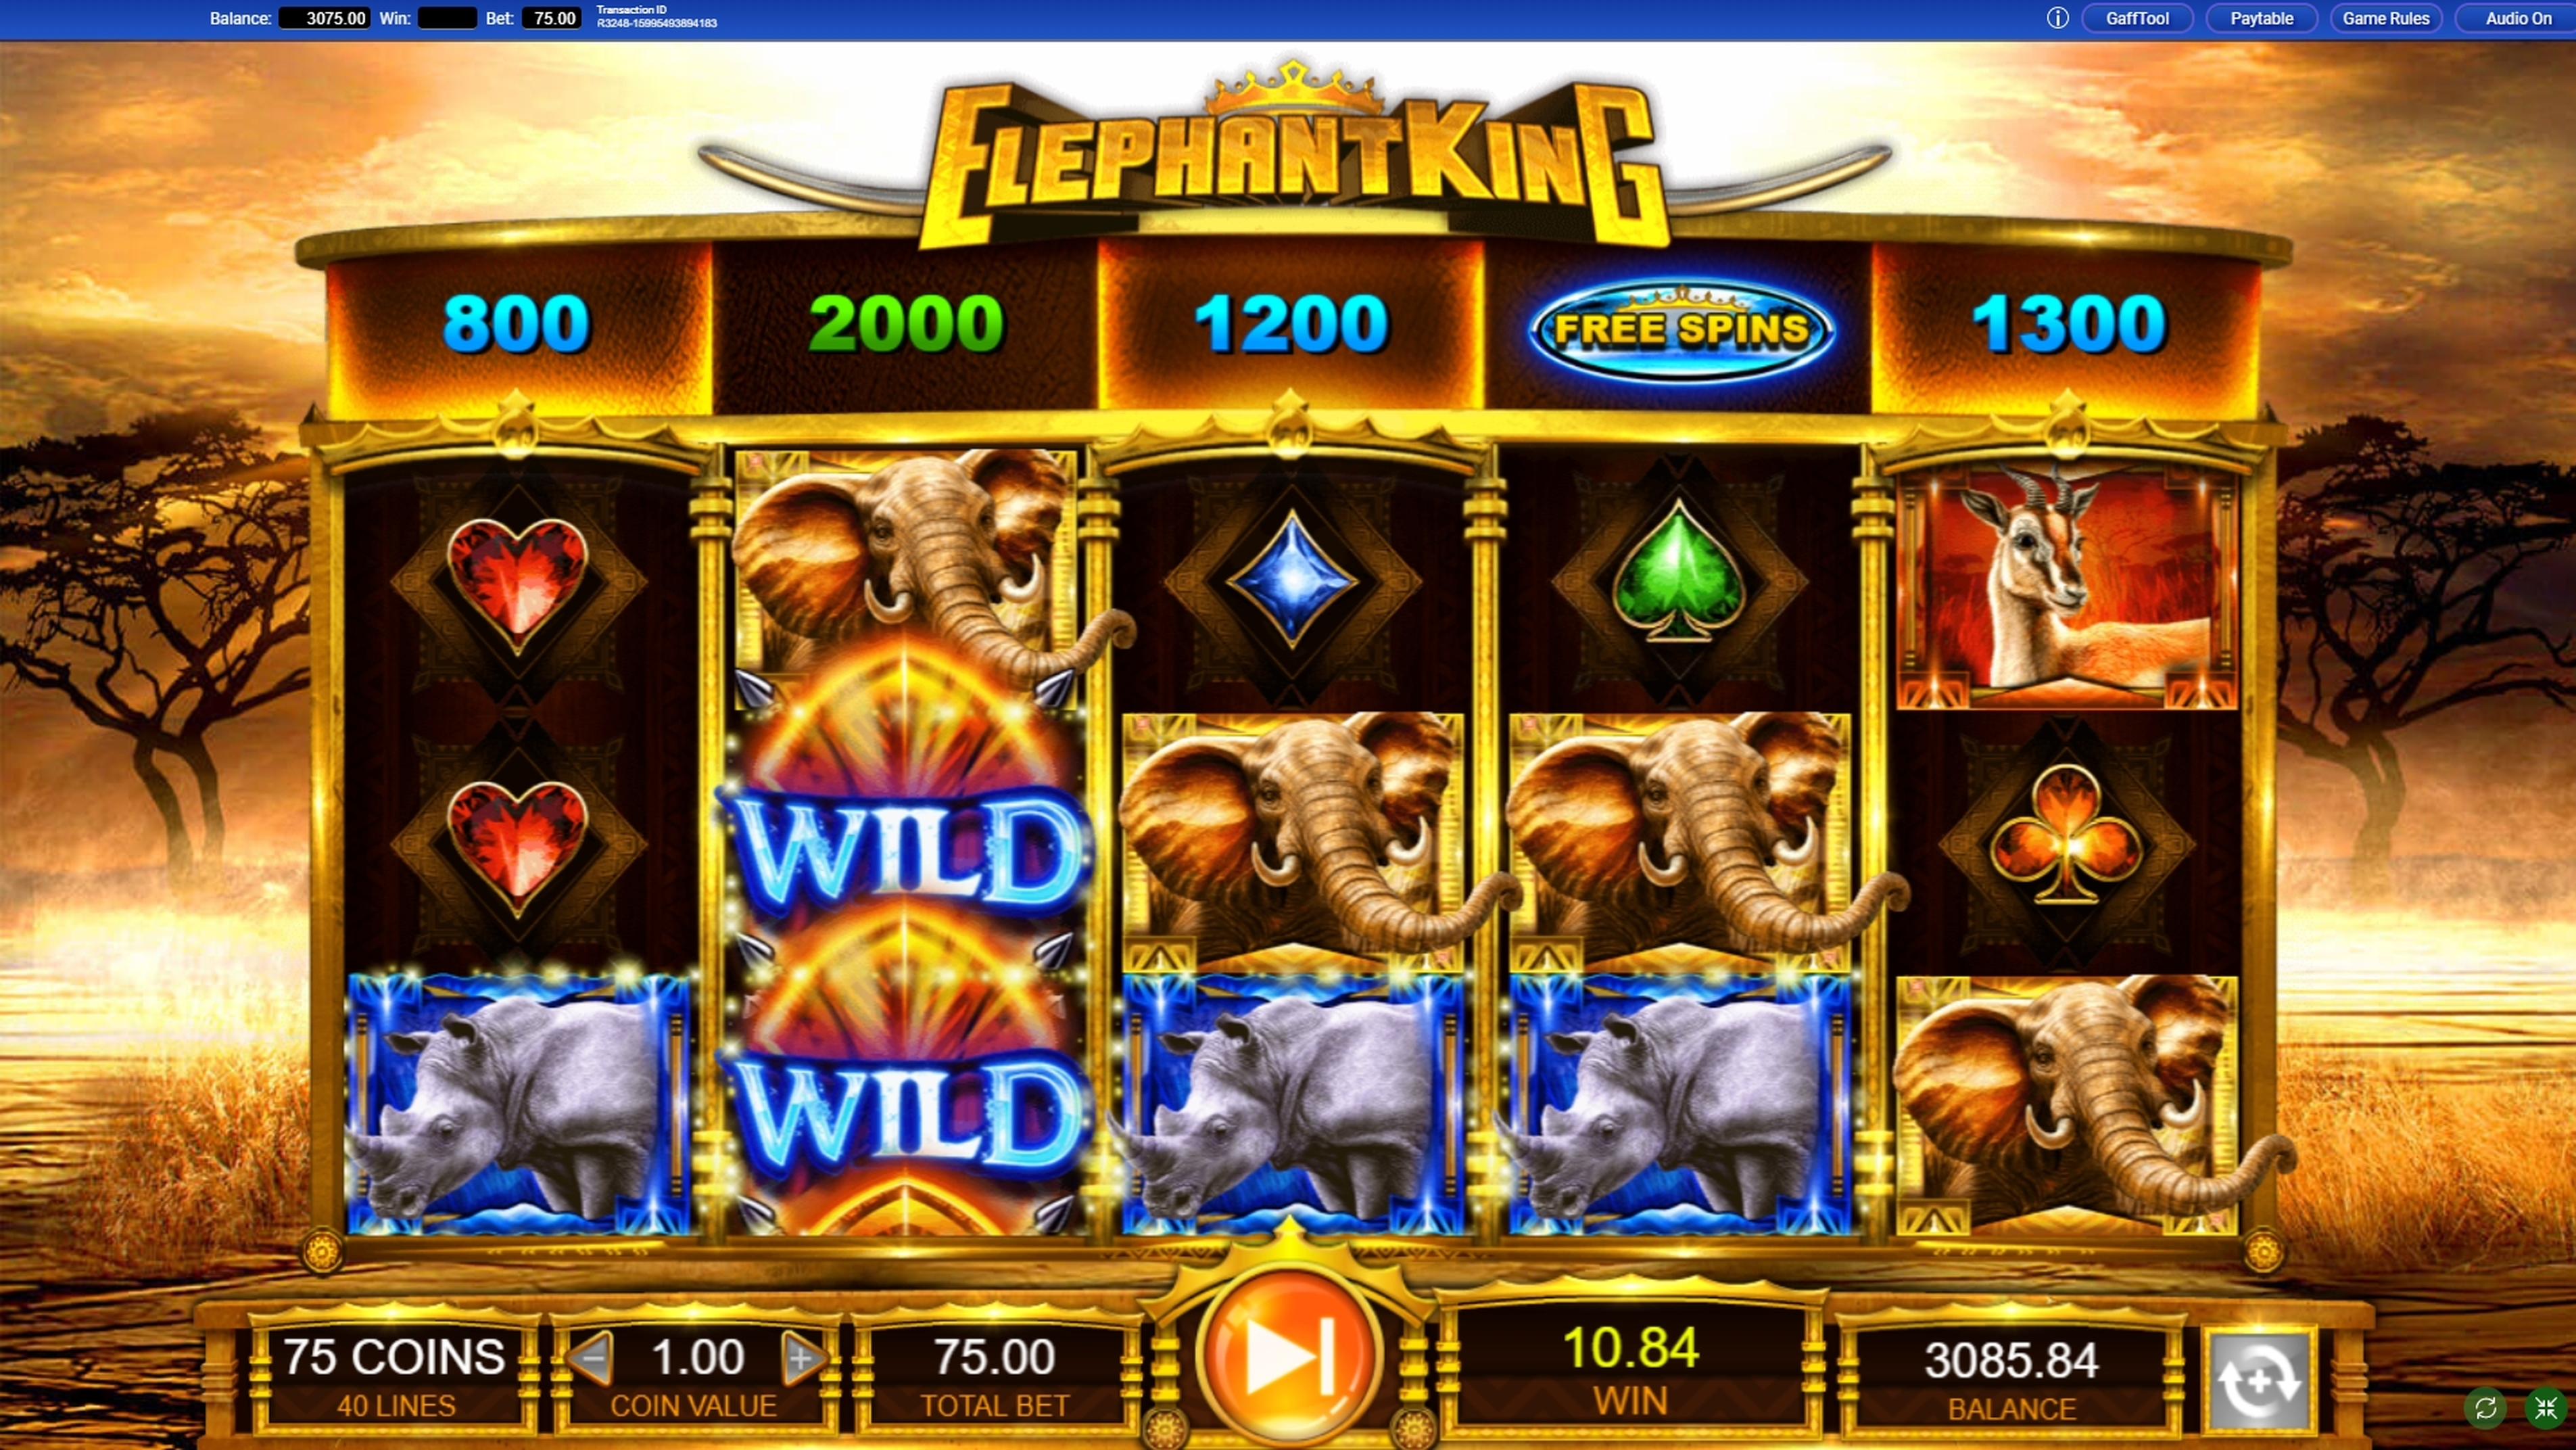 Win Money in Elephant King Free Slot Game by IGT